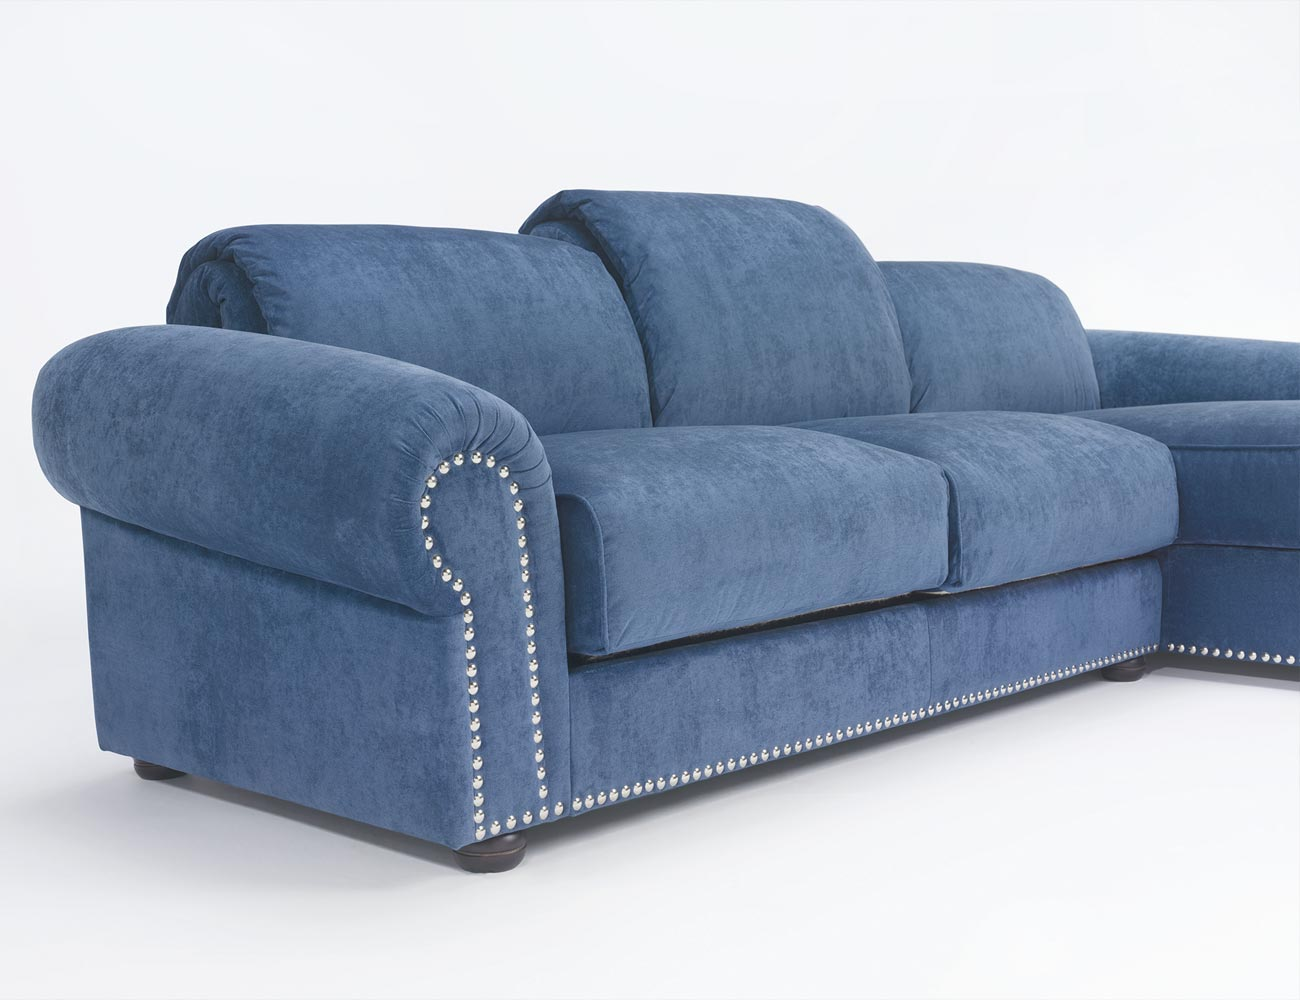 Sofa chaiselongue gran lujo decorativo azul 115